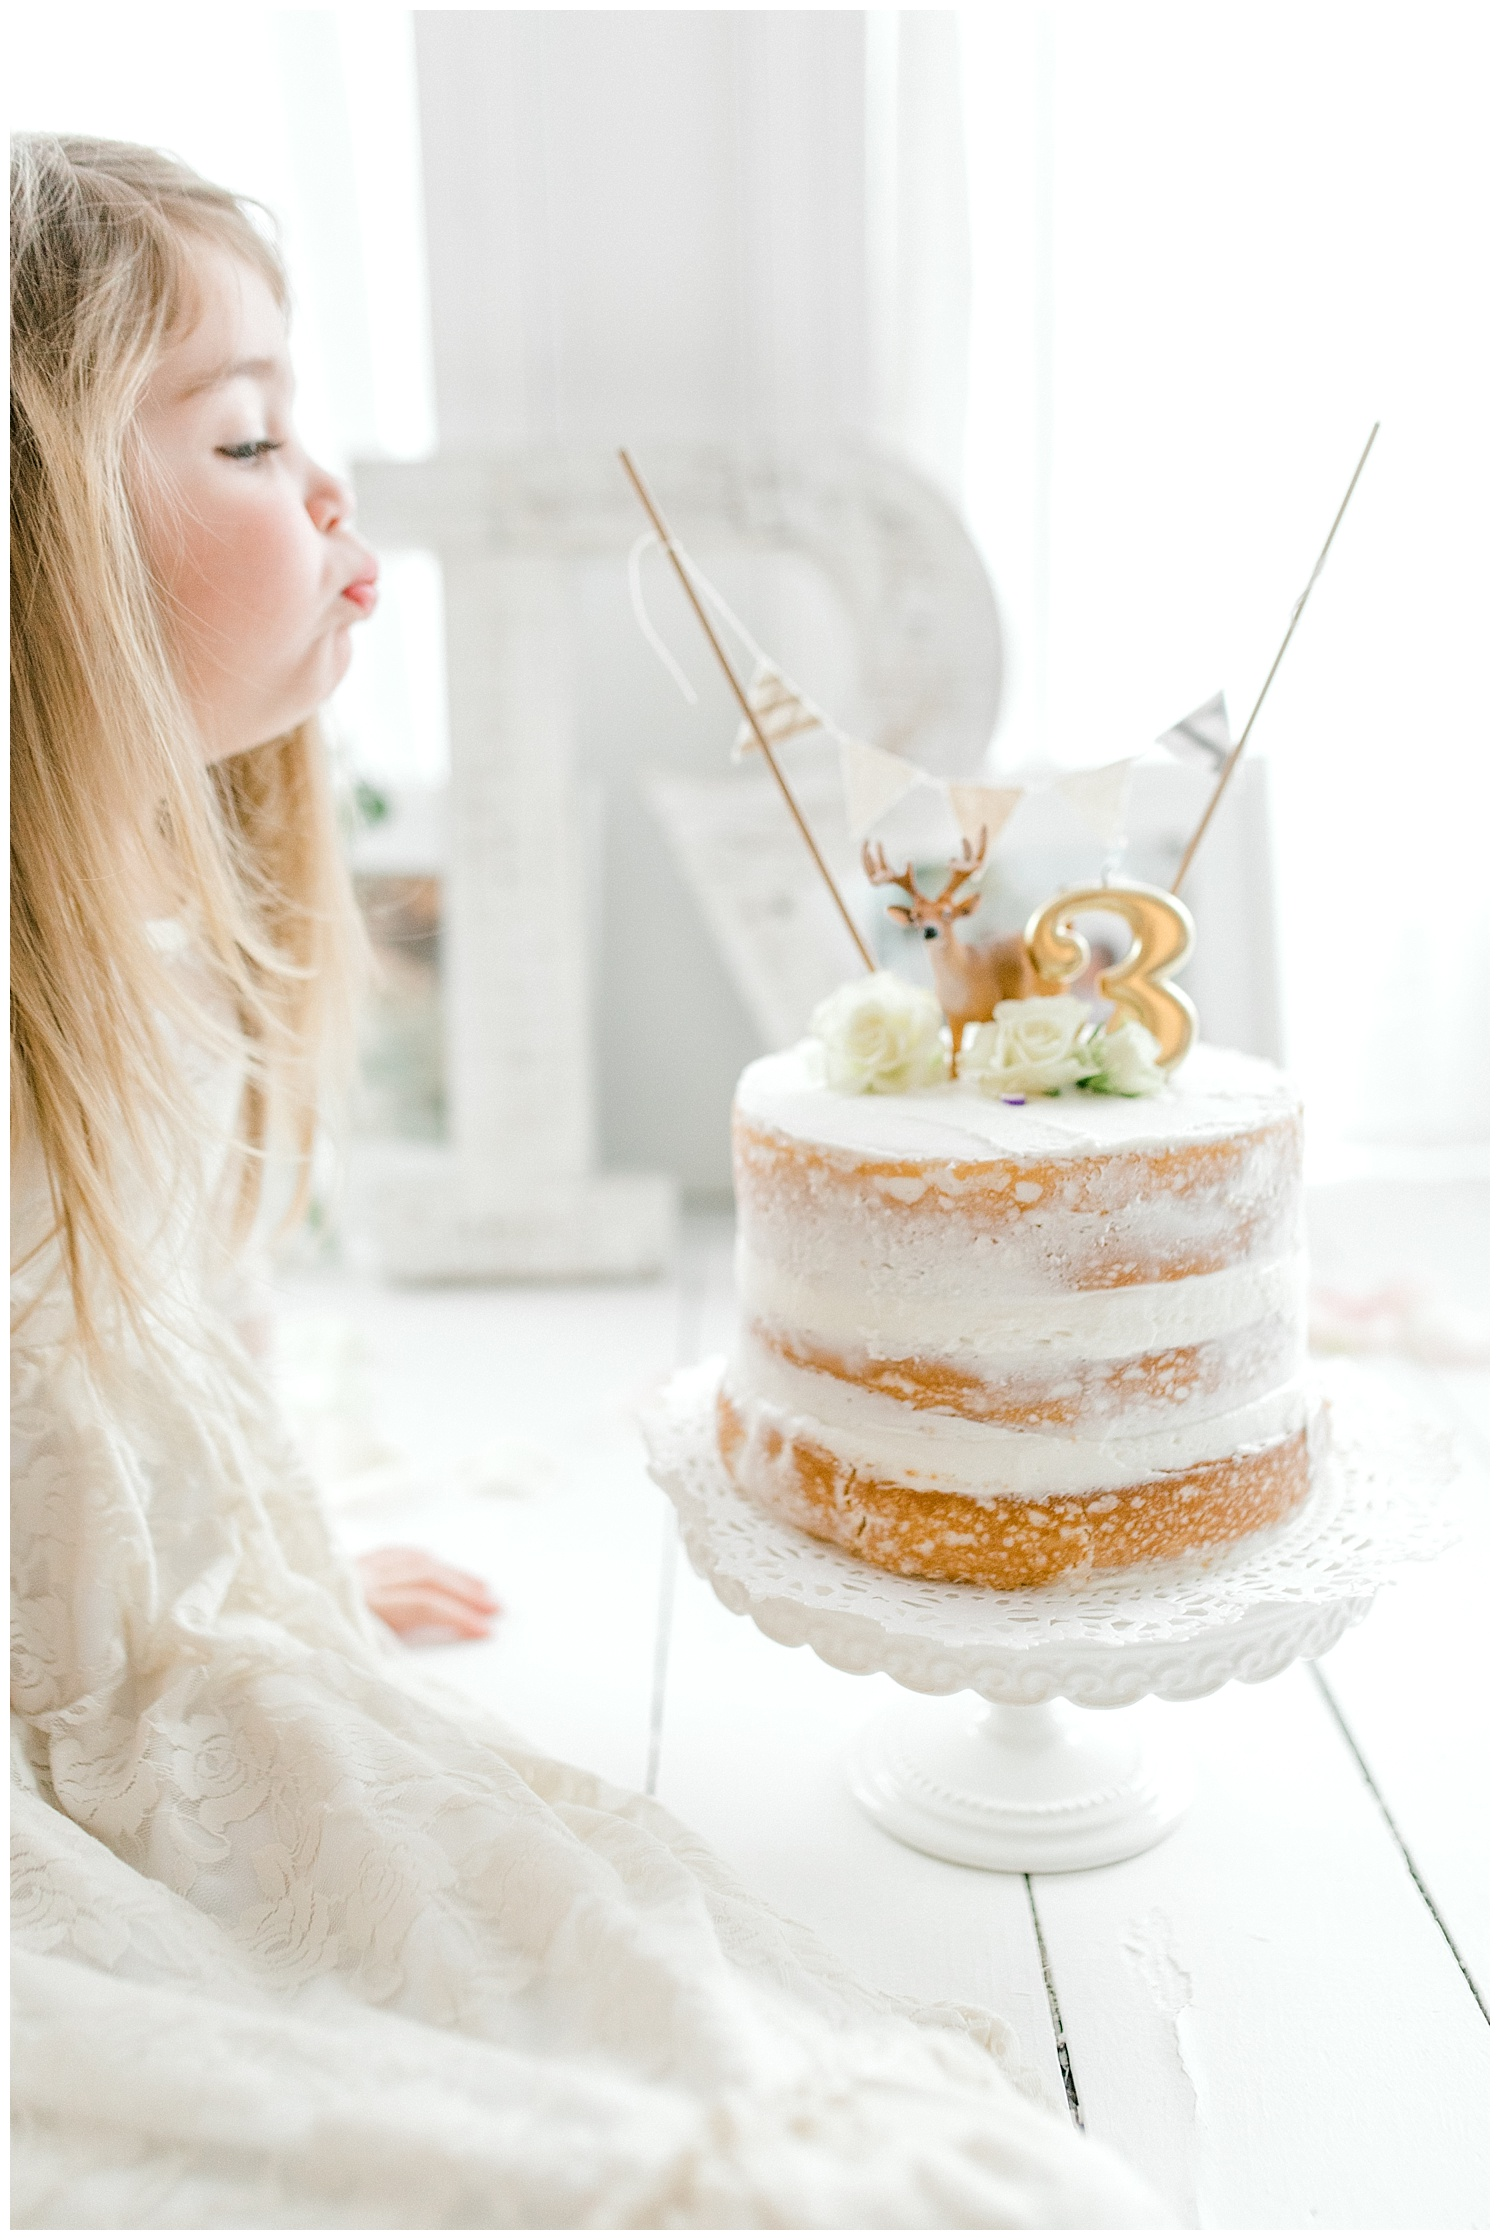 The Most Perfect Little Girl's Birthday Party Design | Animal Themed Toddler Birthday | Emma Rose Company | Blush and Grey Roses | Perfect White Rustic Birthday Cake | Deer Cake